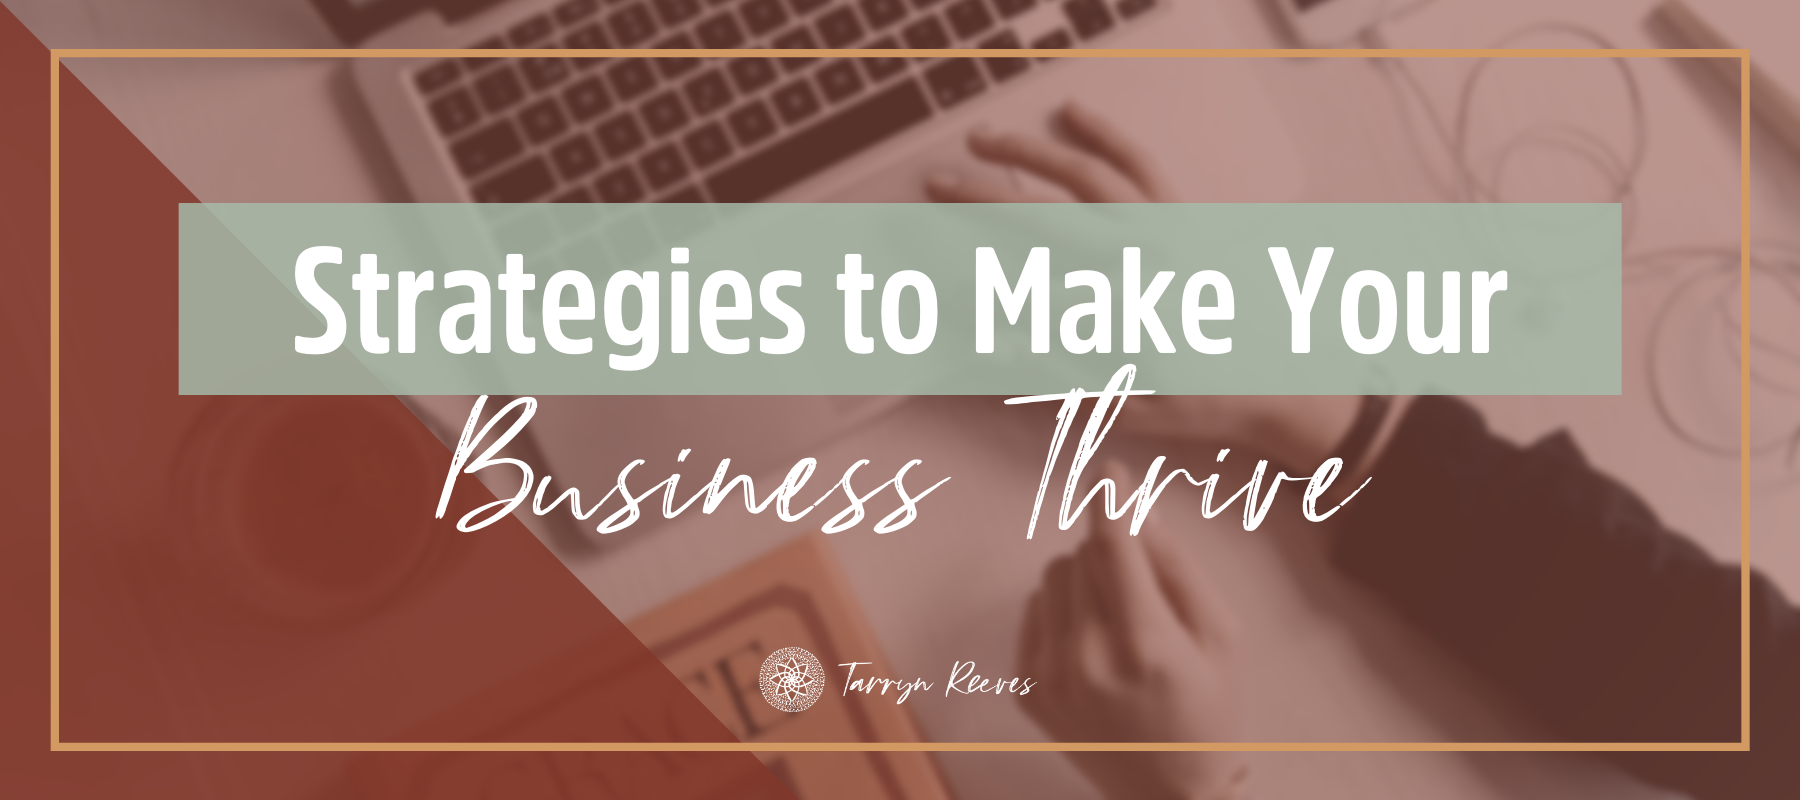 Strategies to Make Your Business Thrive